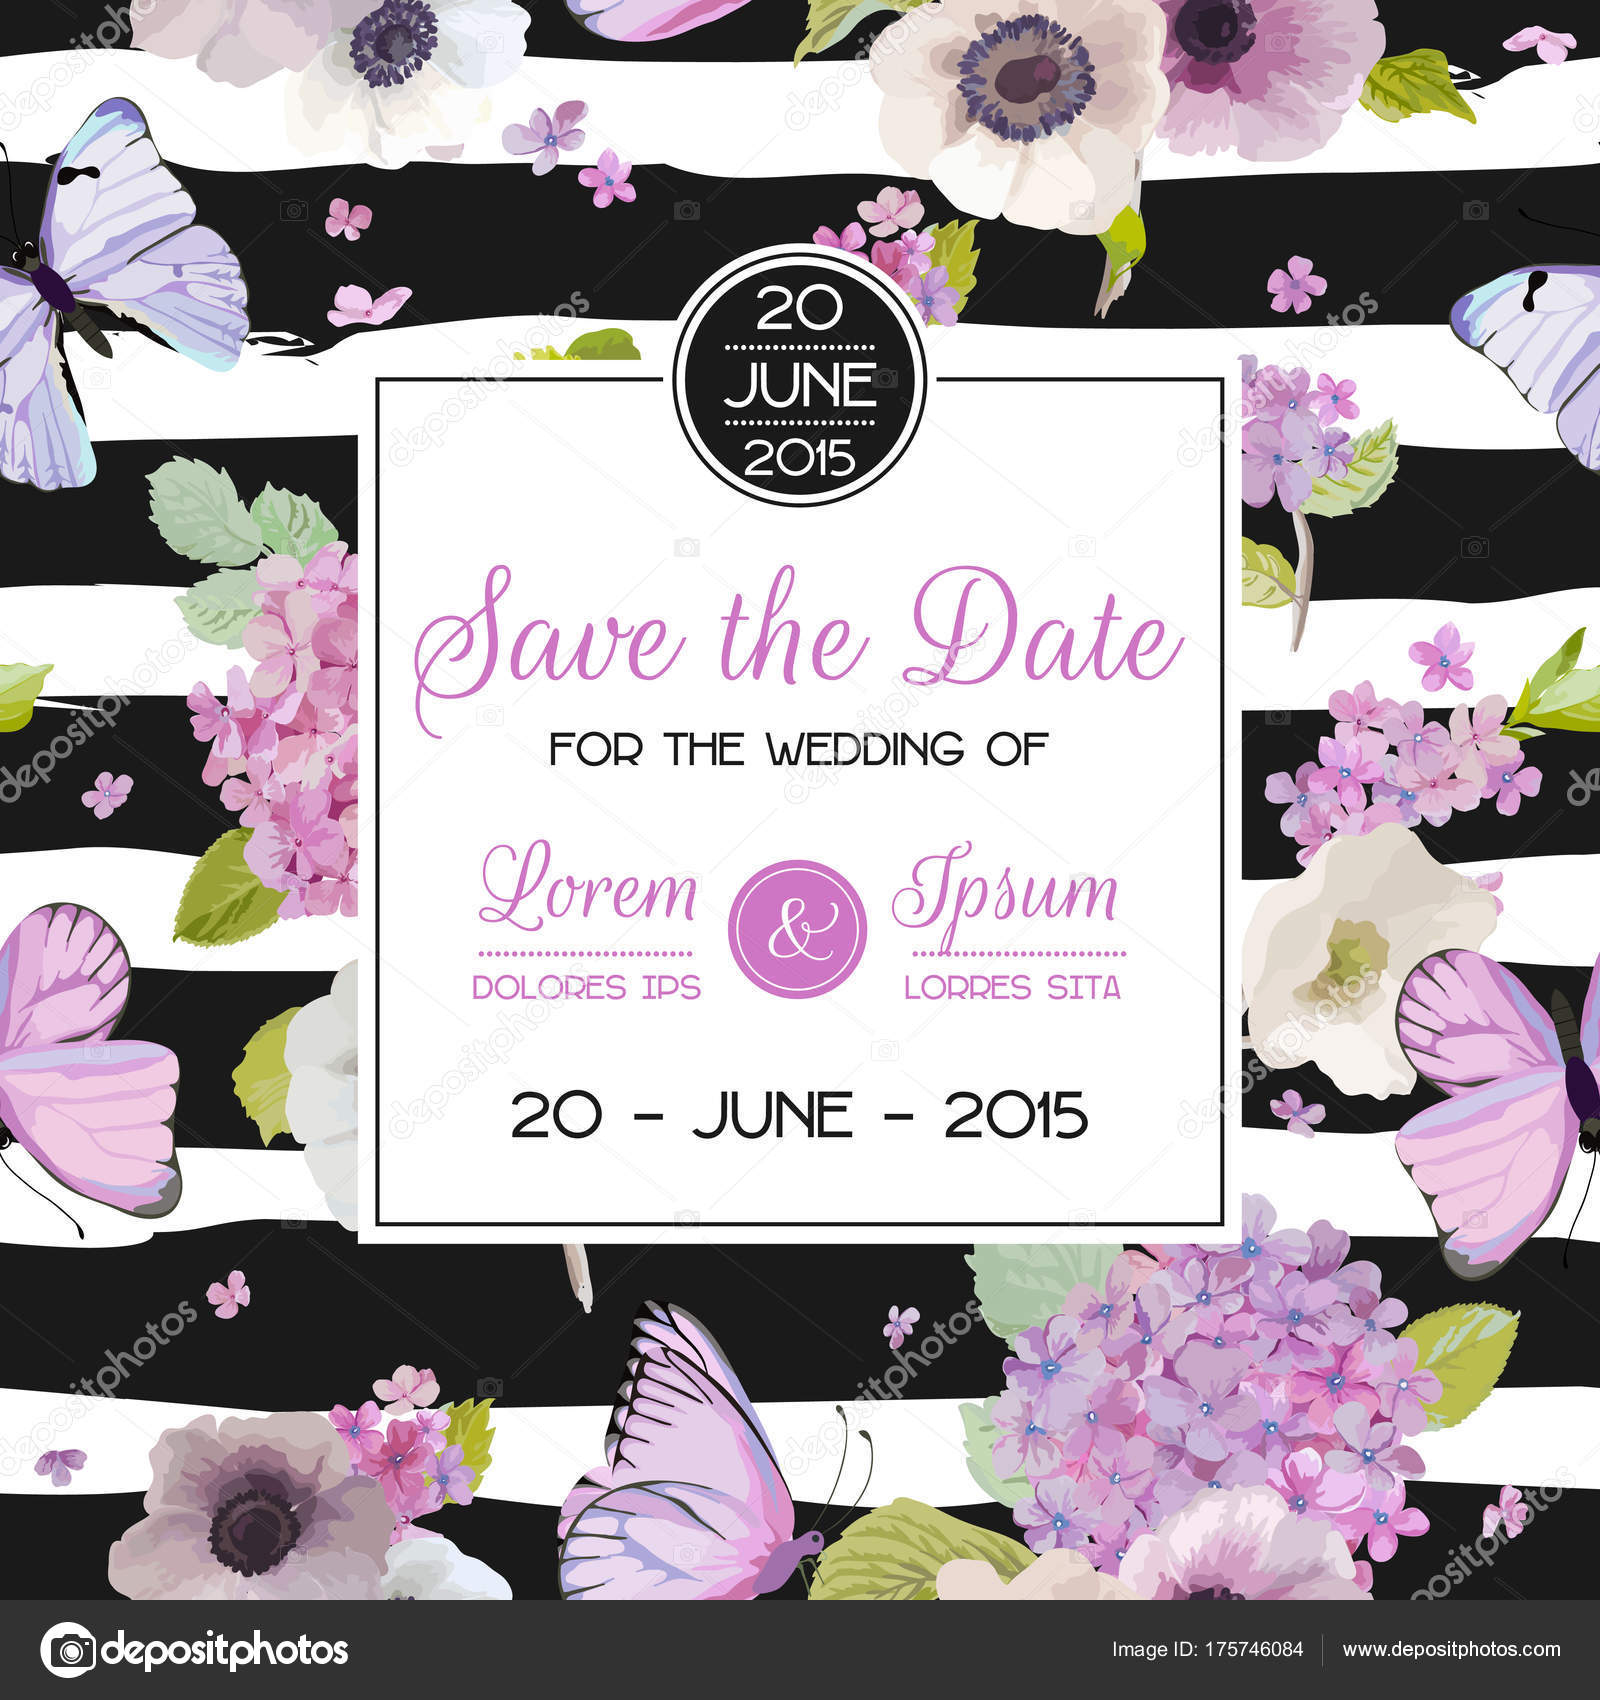 Wedding Invitation Template. Save the Date Card with Butterflies ...